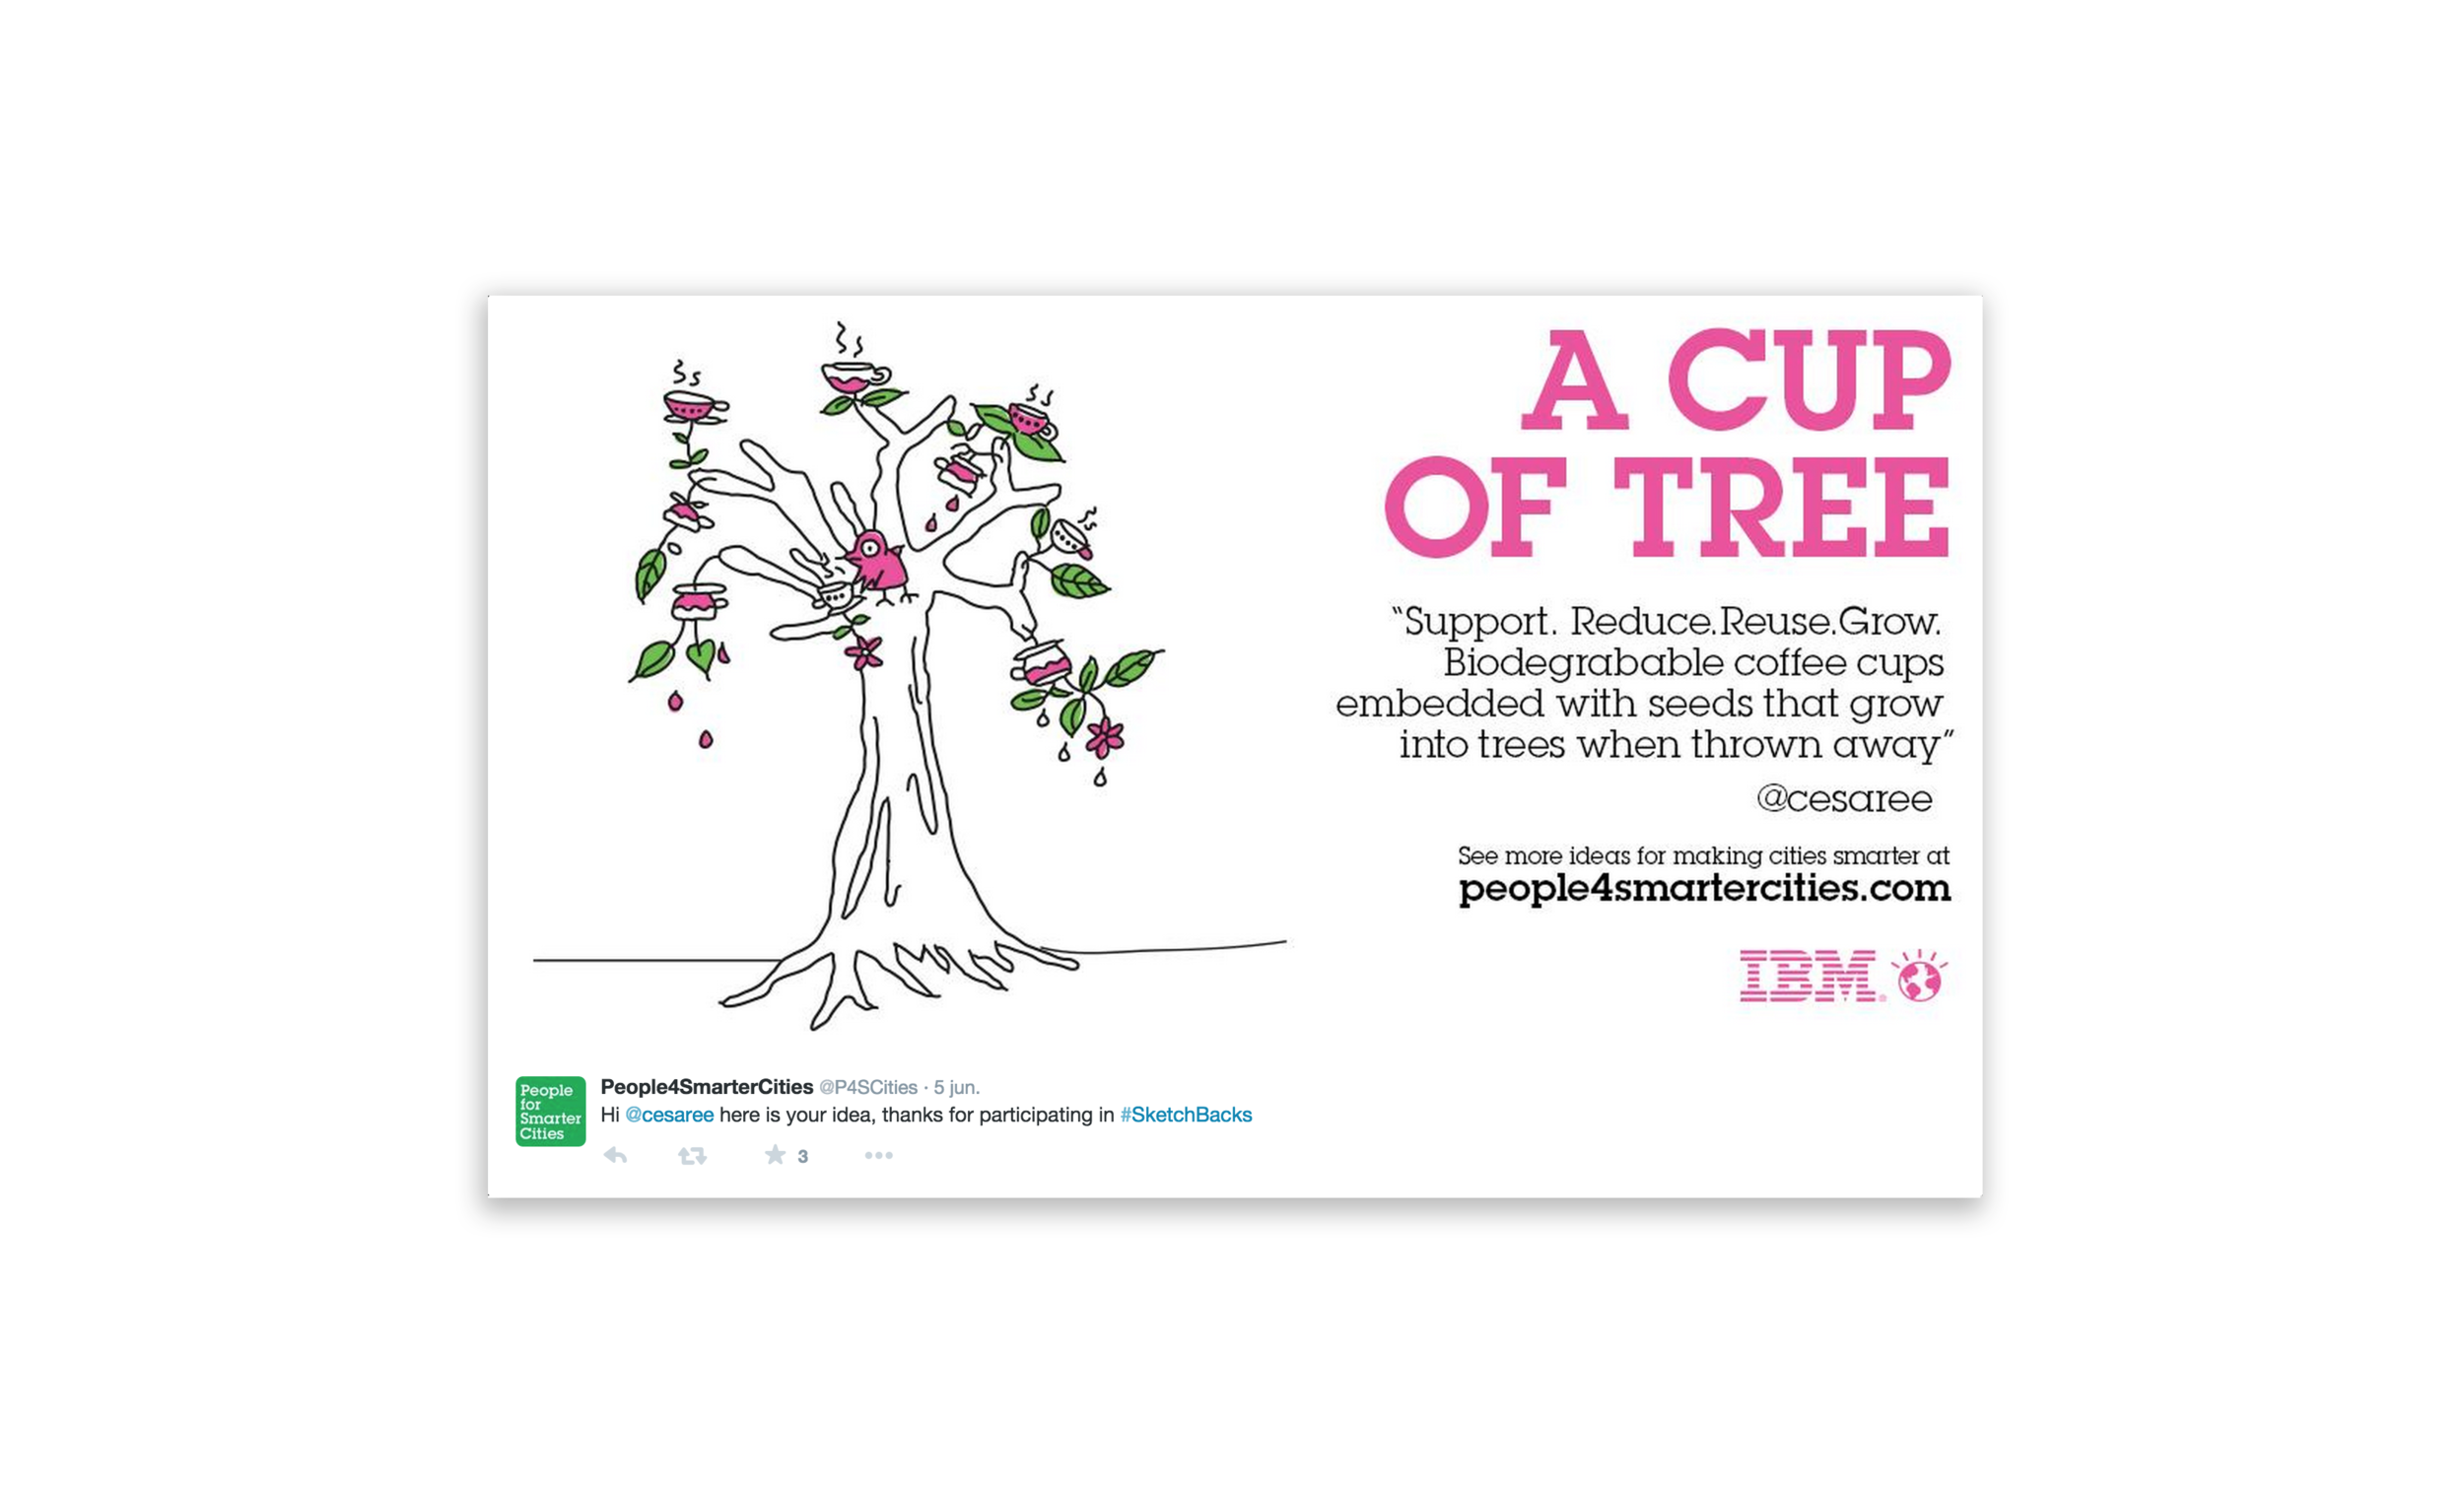 CupofTree.png